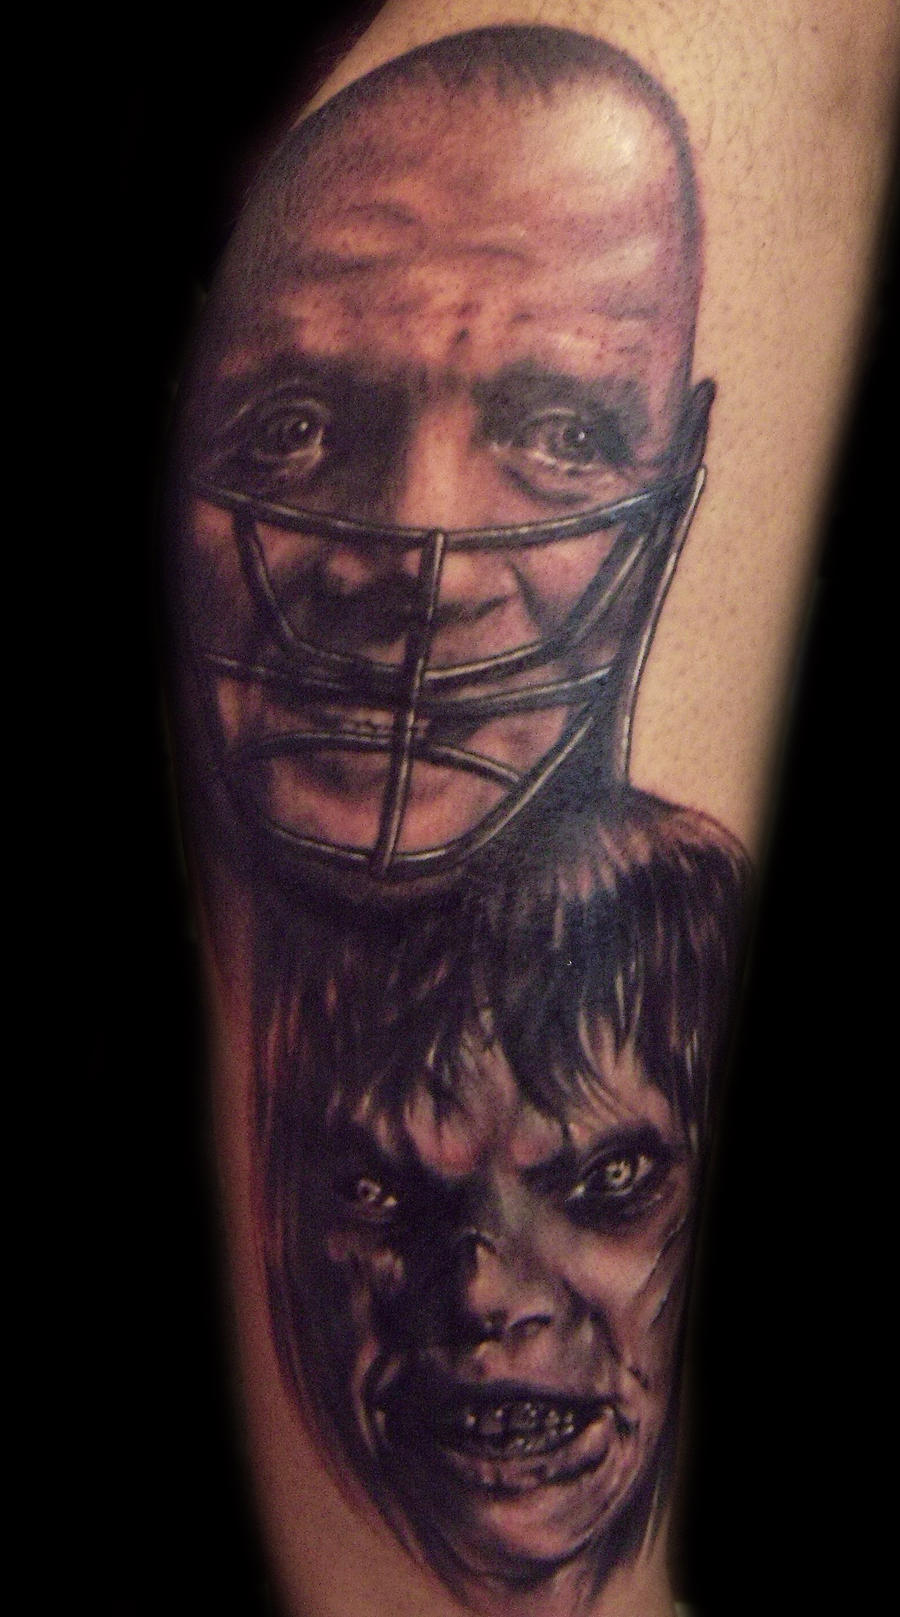 Jersey tattoo expo by *hatefulss on deviantART